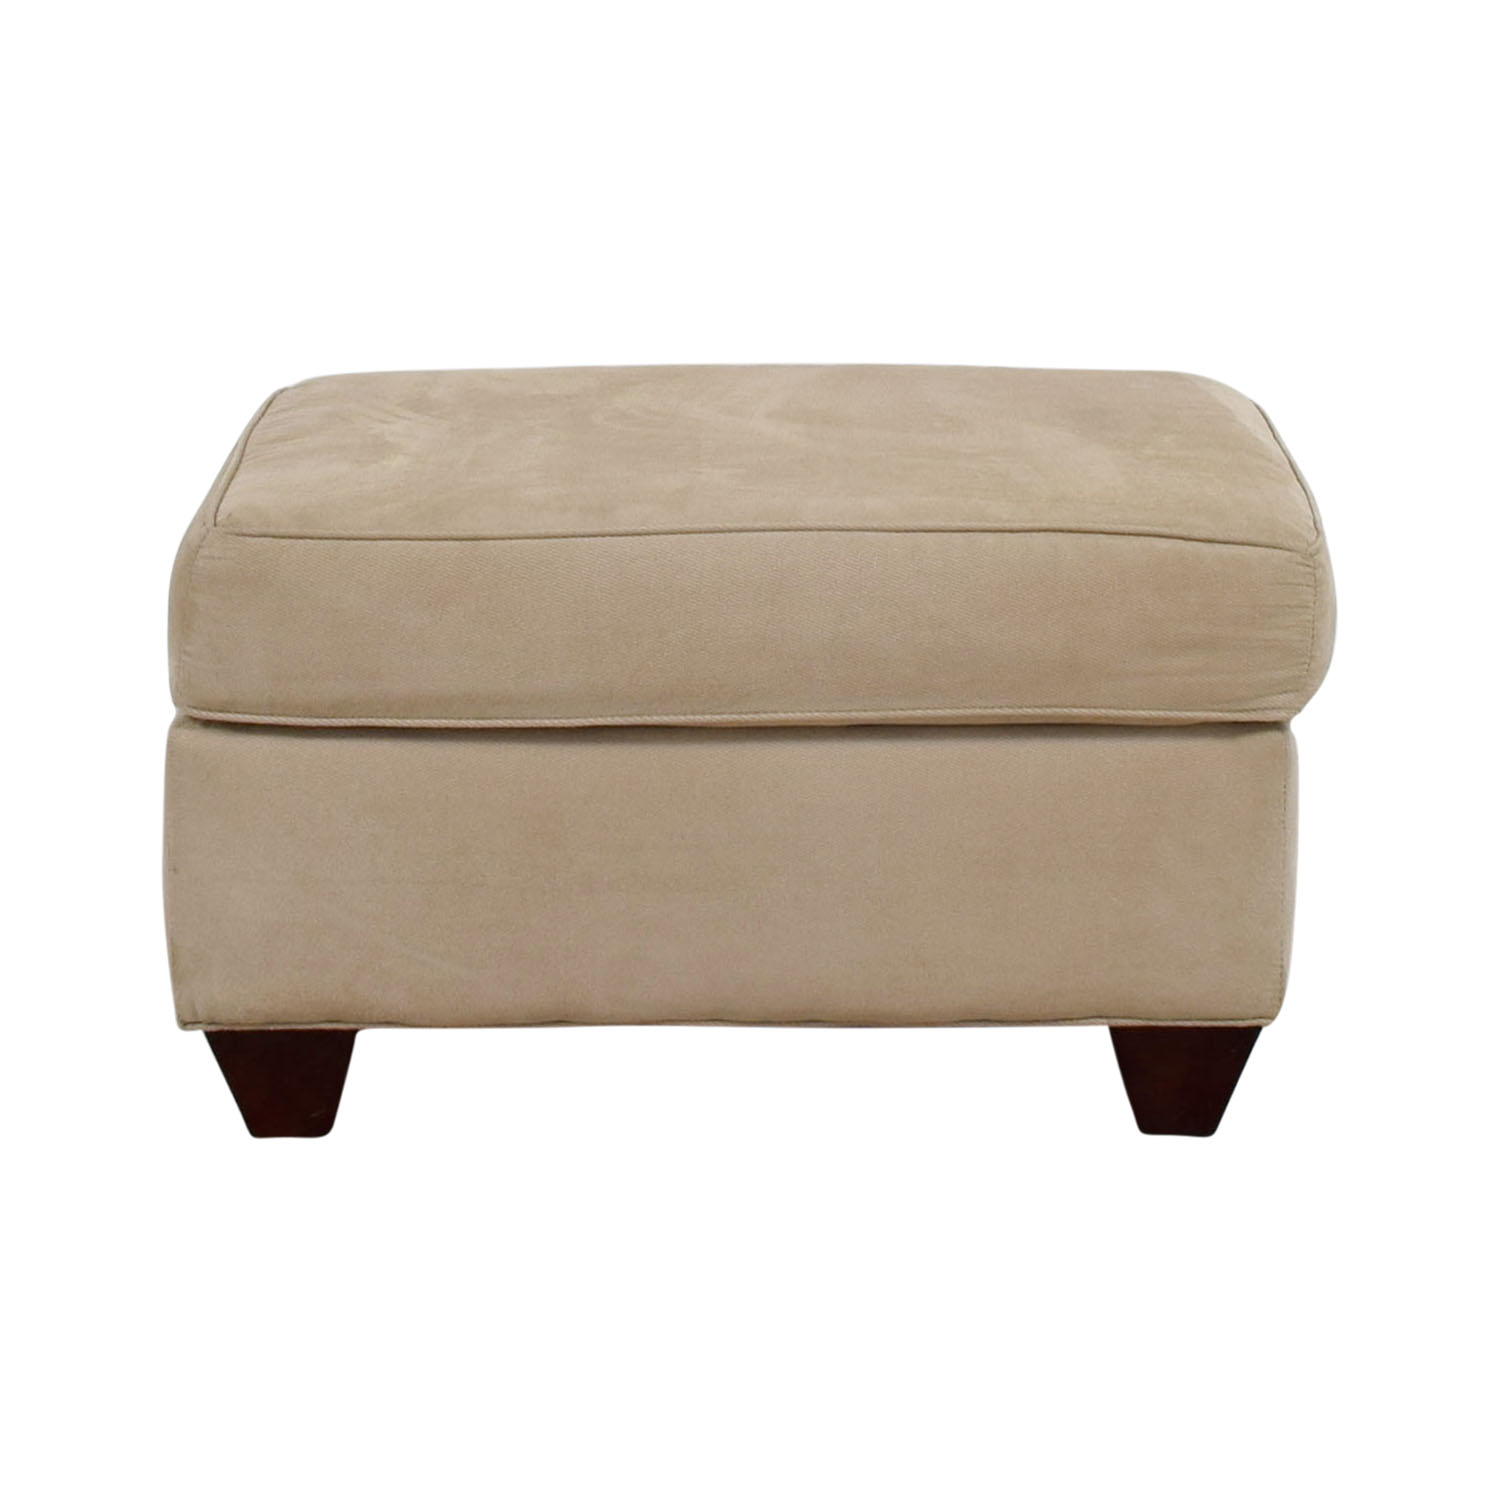 buy Raymour & Flanigan Neutral Ottoman Raymour & Flanigan Sofas